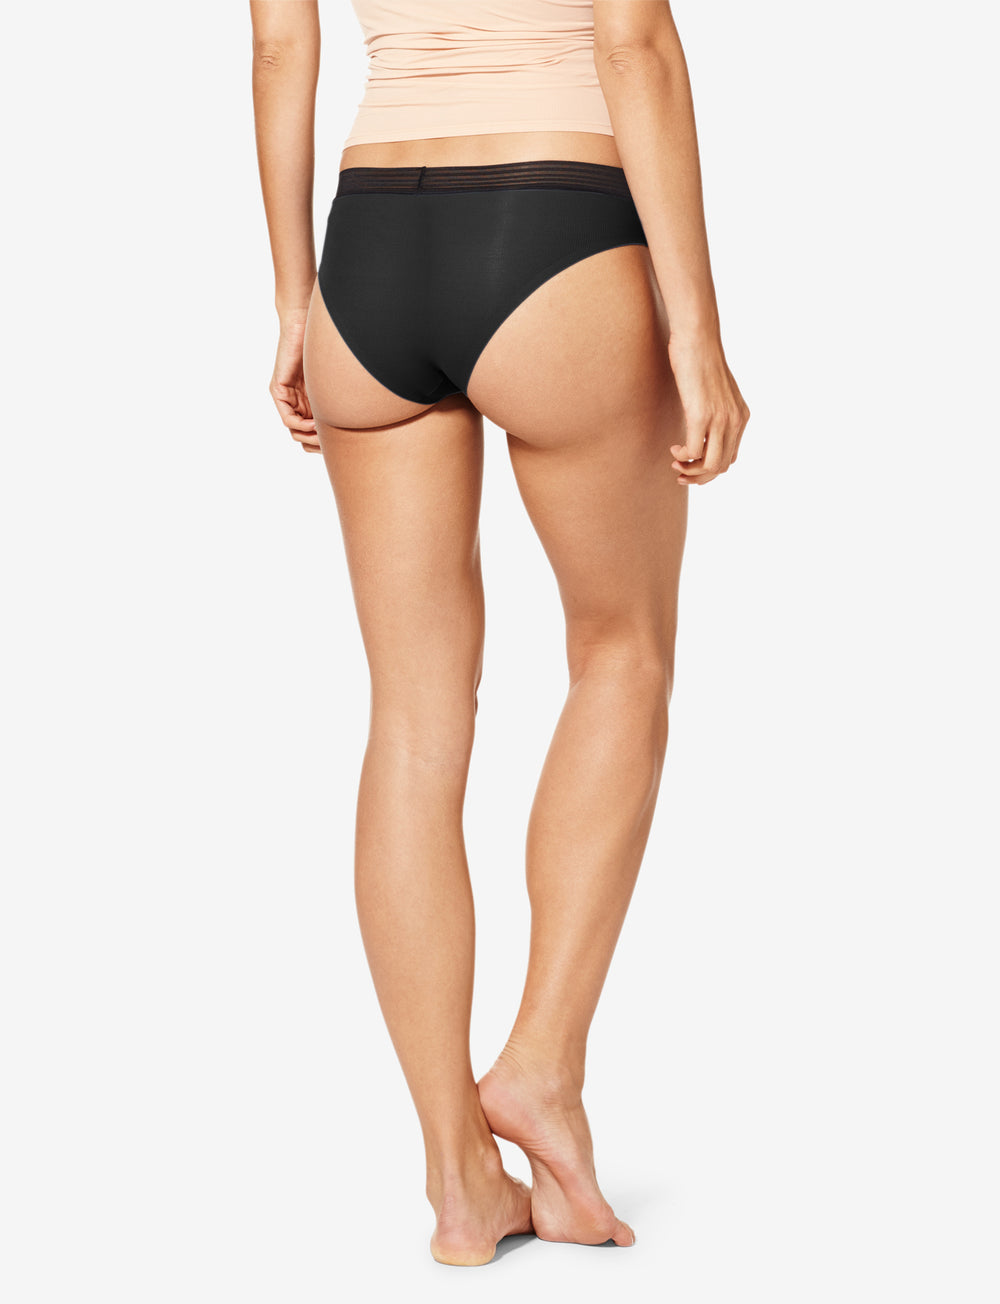 Women's Air Sheer Stripe Elastic Cheeky Details Image